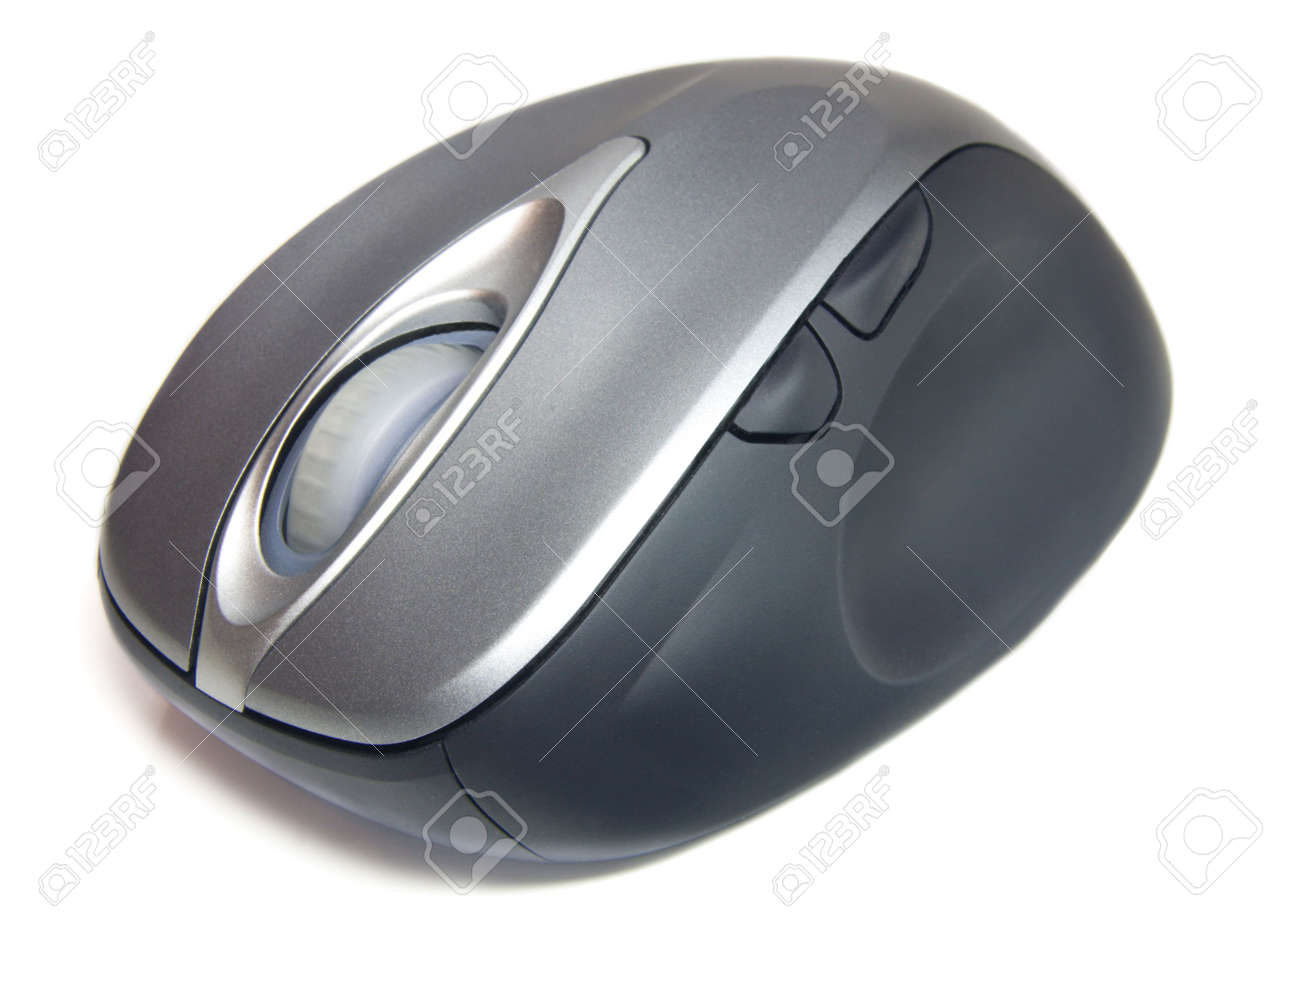 computer mouse isolated on a white background Stock Photo - 3911344